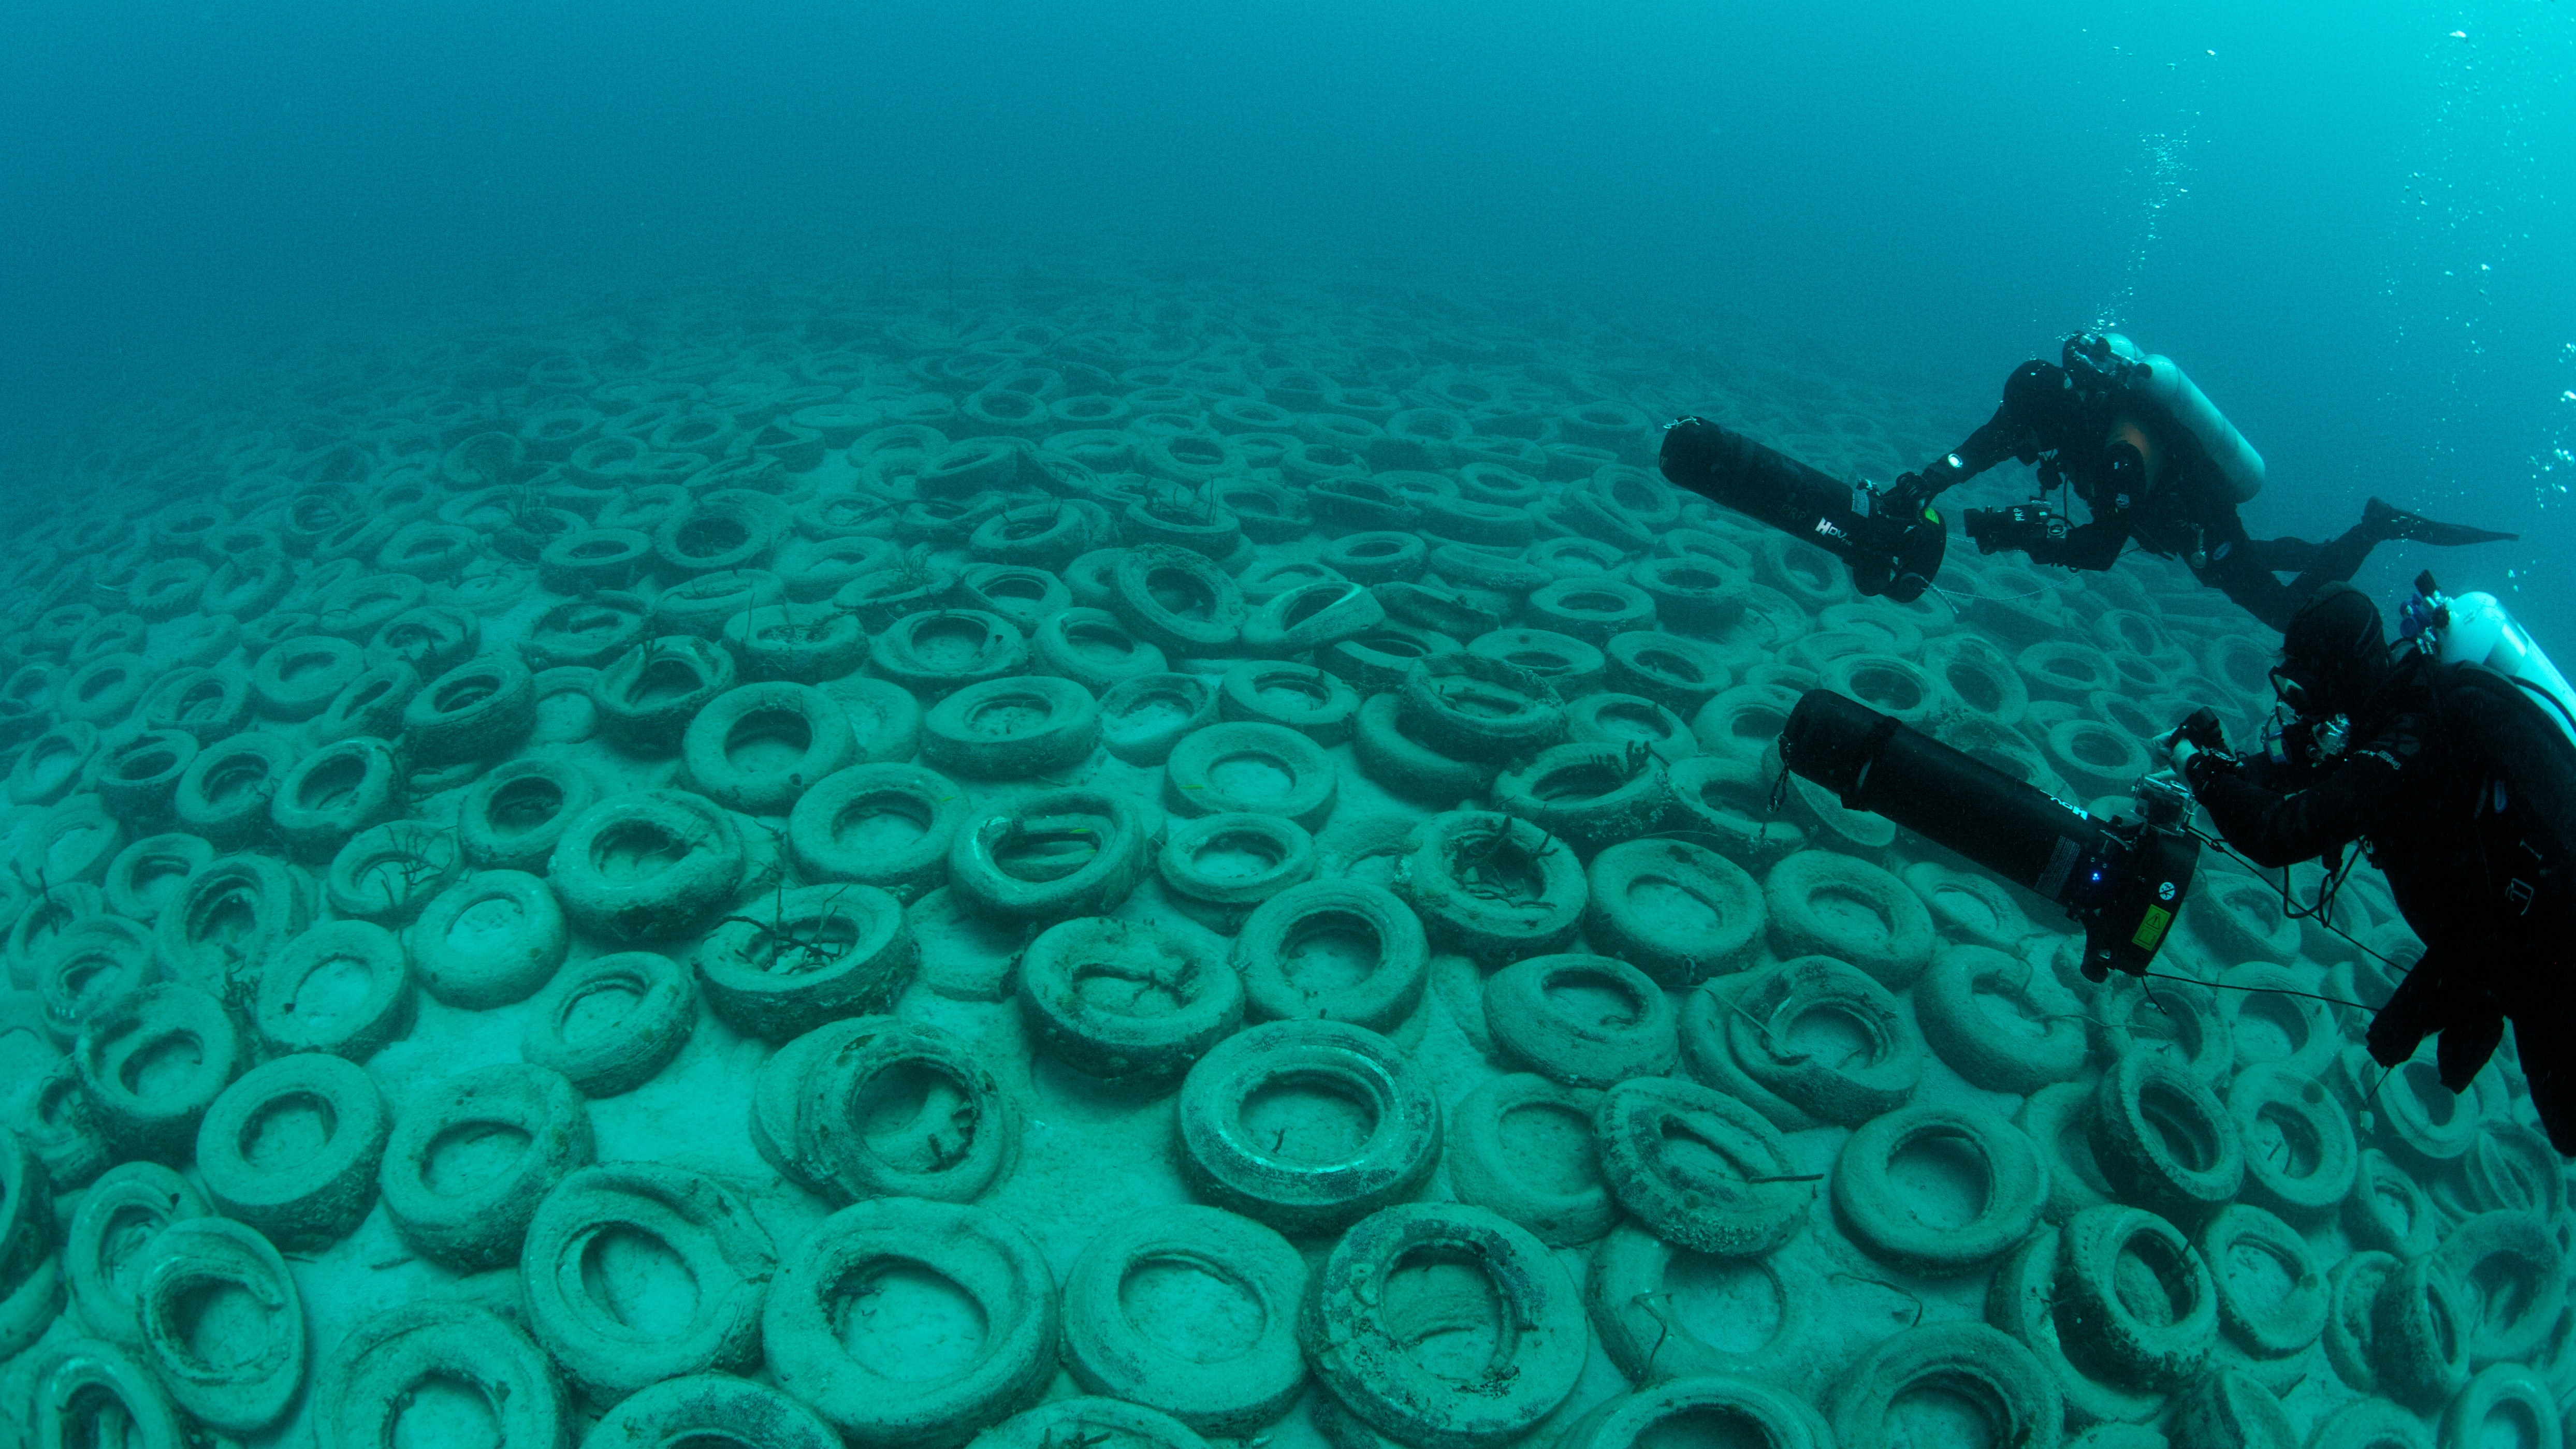 Florida is still cleaning up nearly 1 million tires that ...